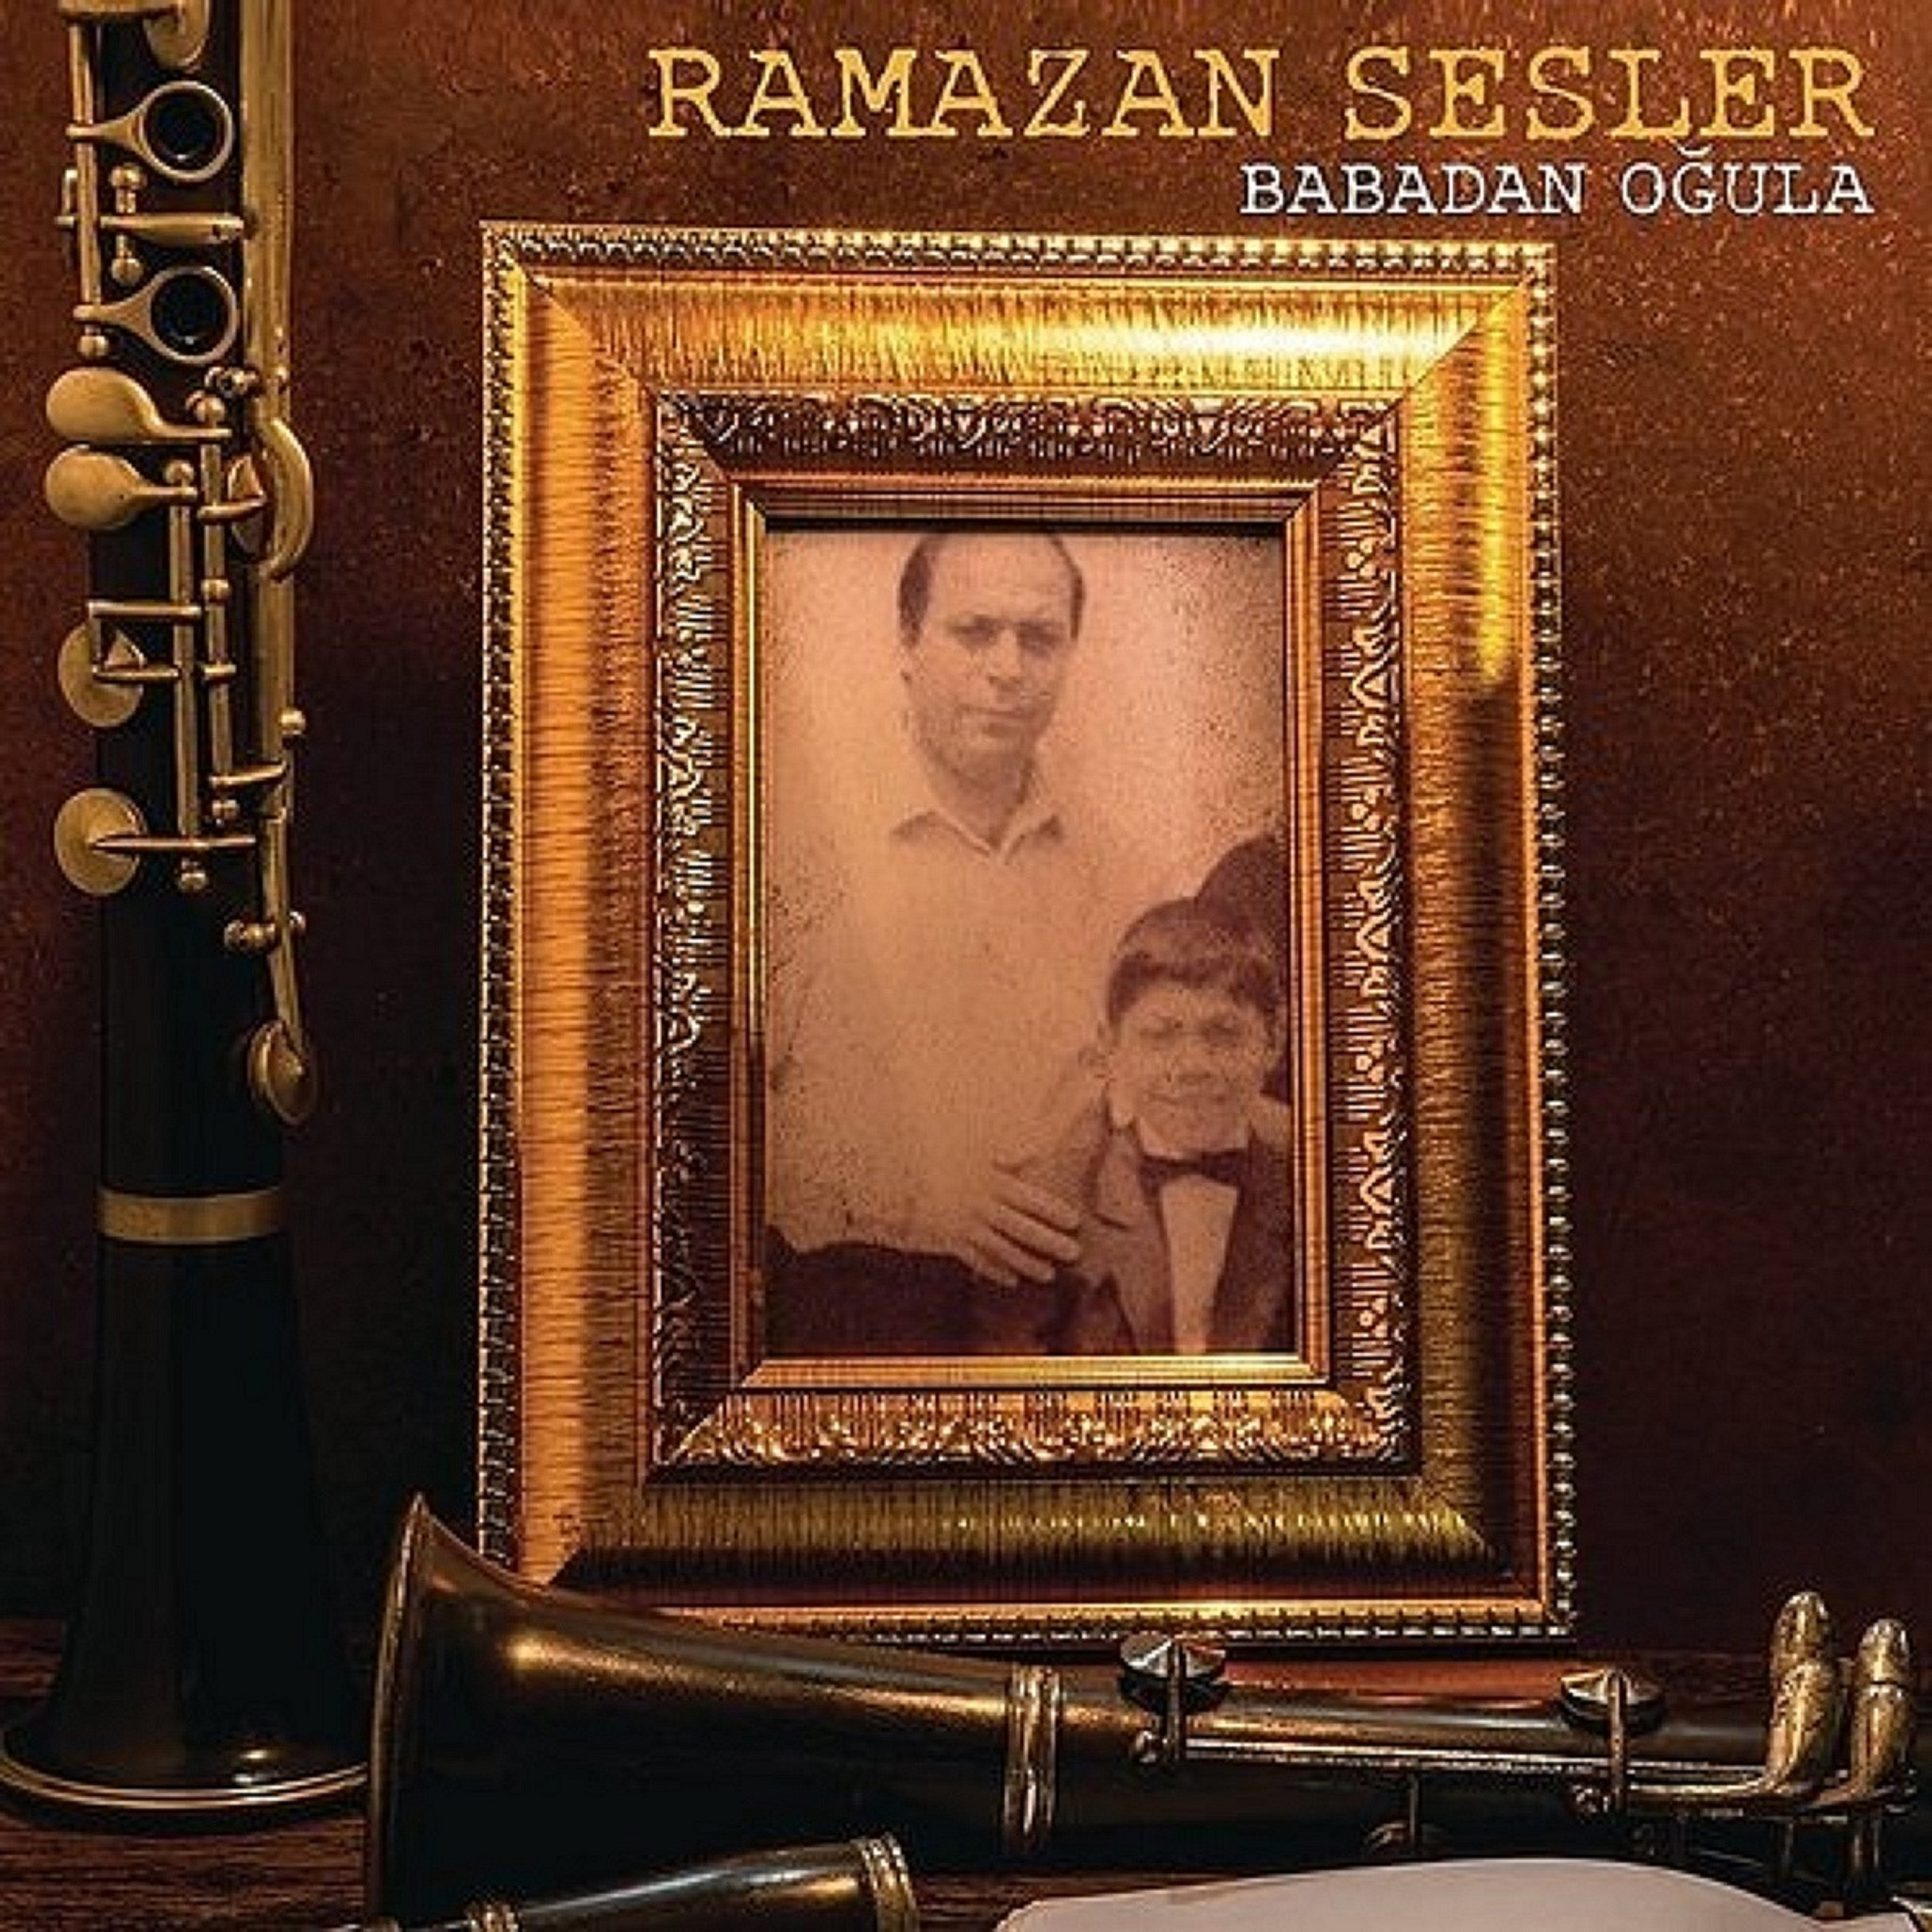 Ramazan Sesler: From Father to Son